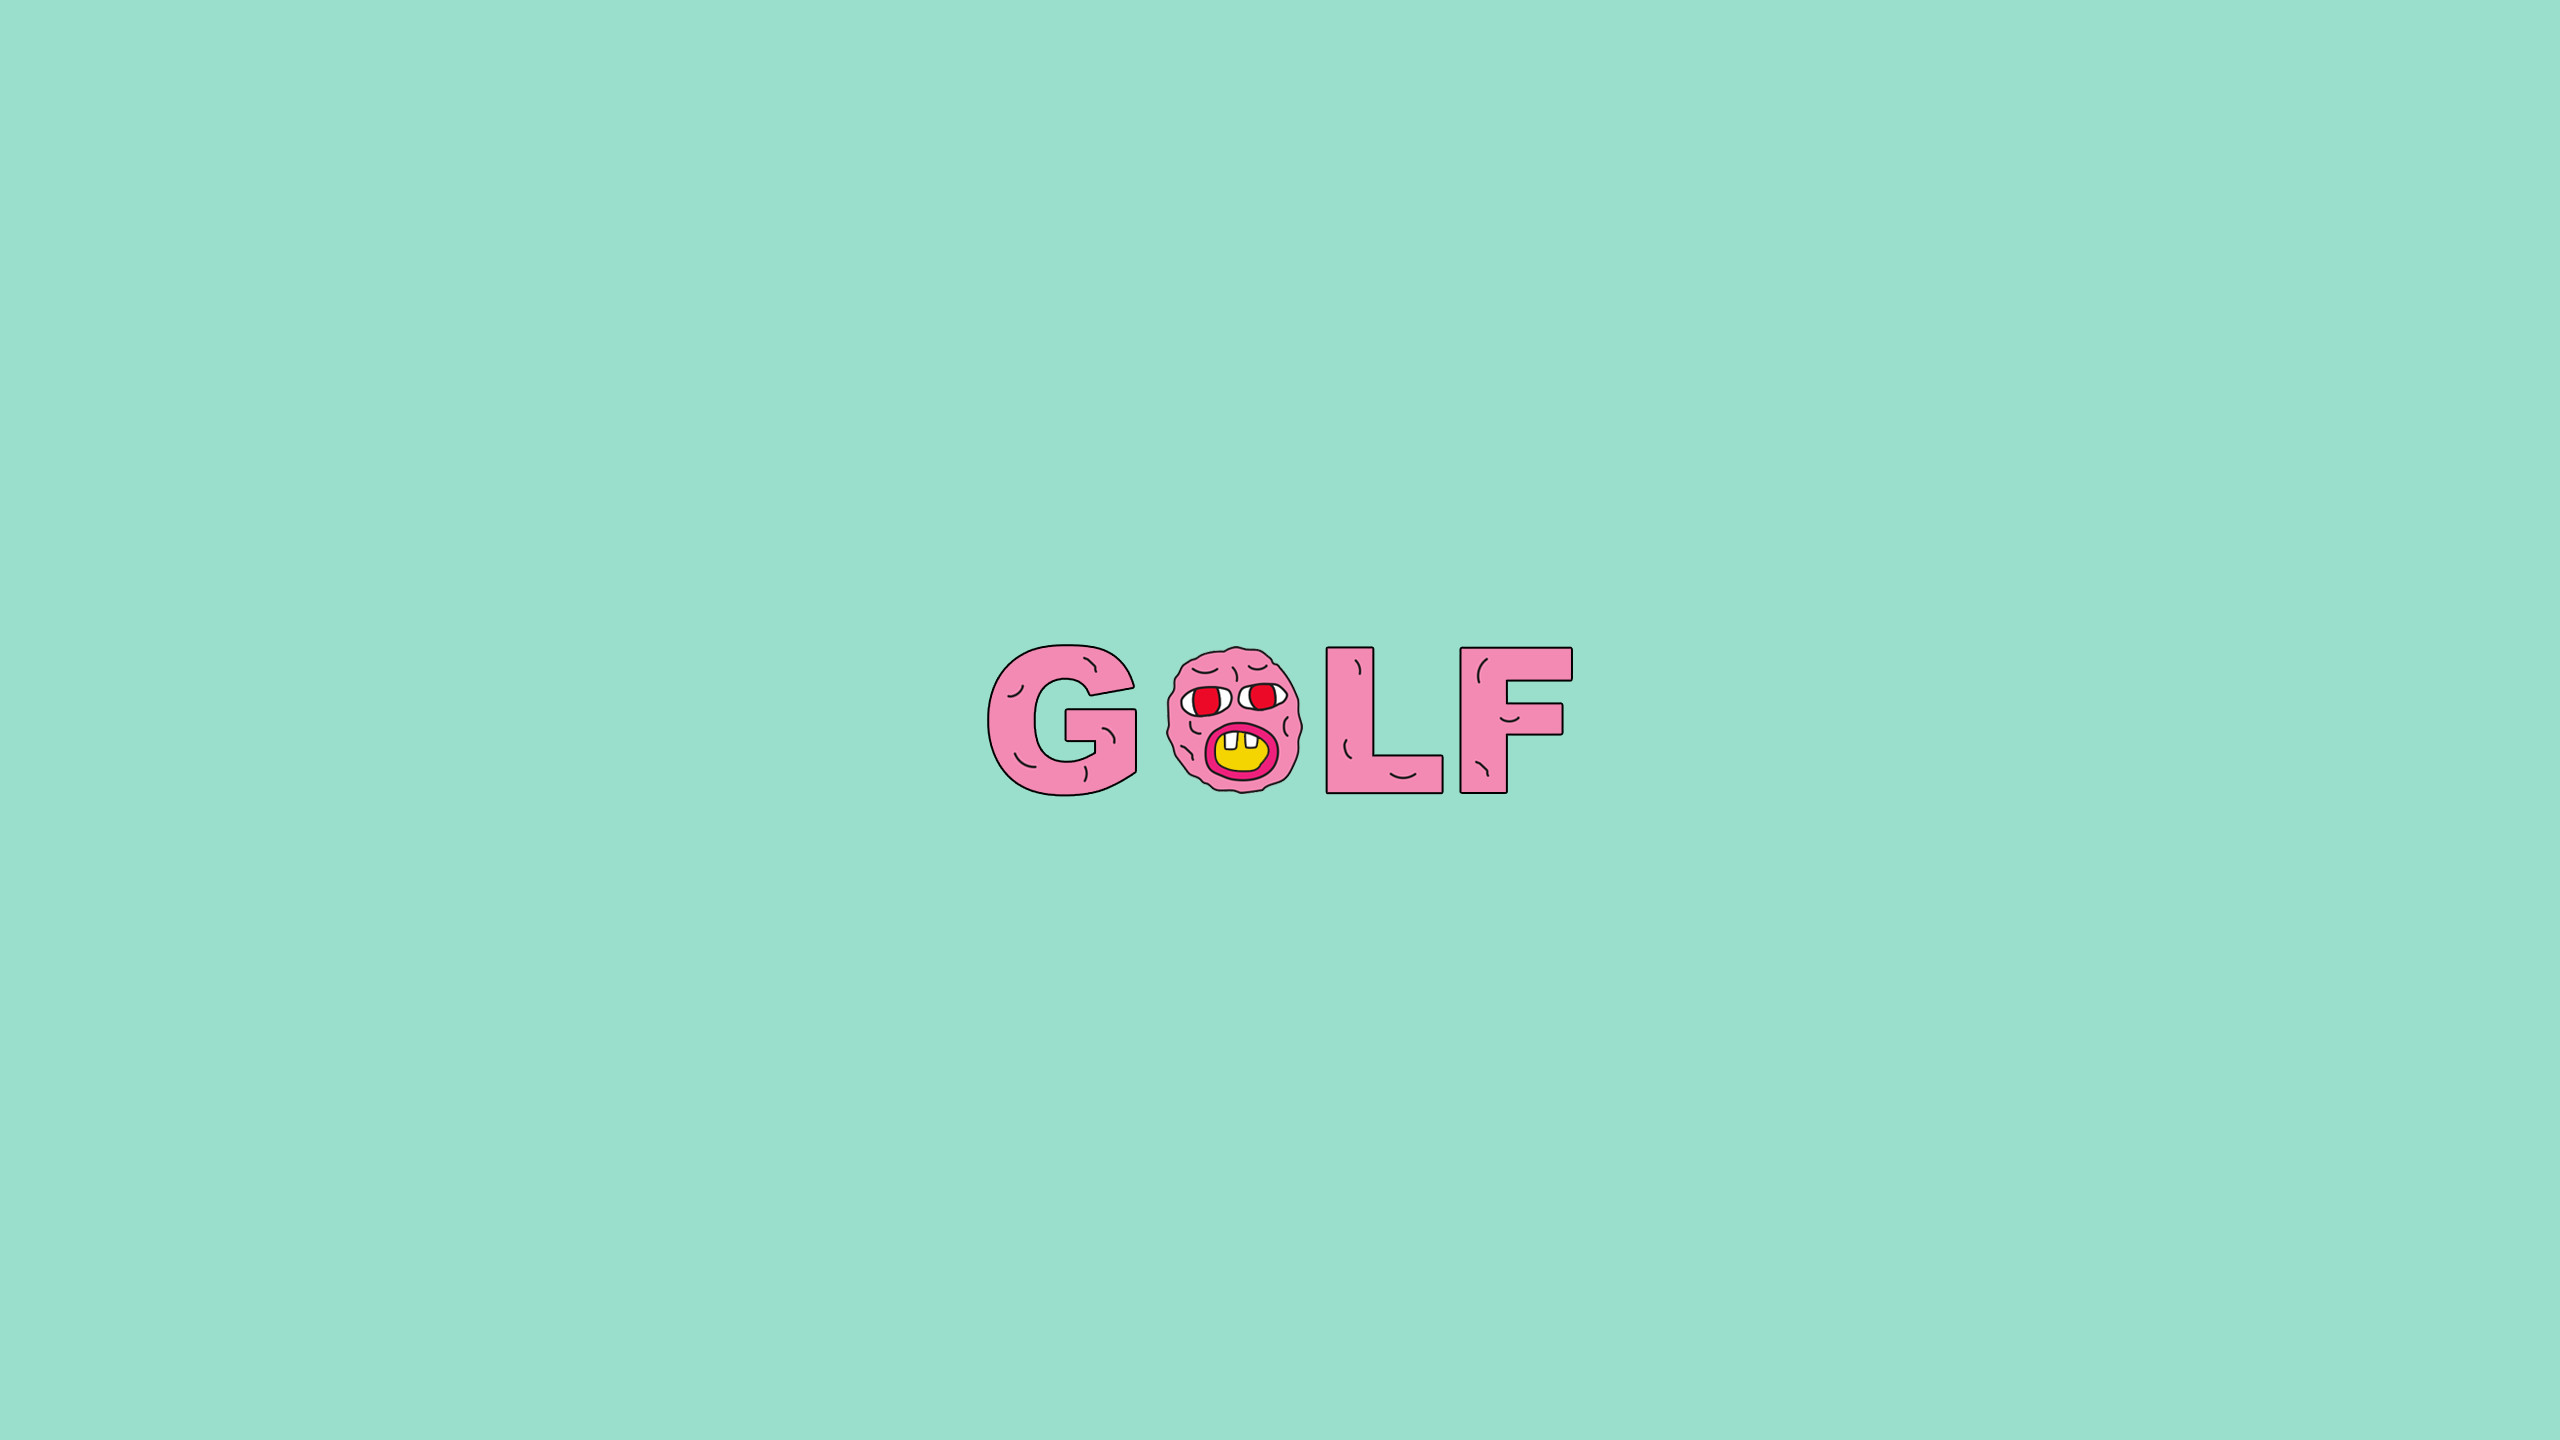 1920x1080 Windows Odd Future Wallpaper Wpt1001013